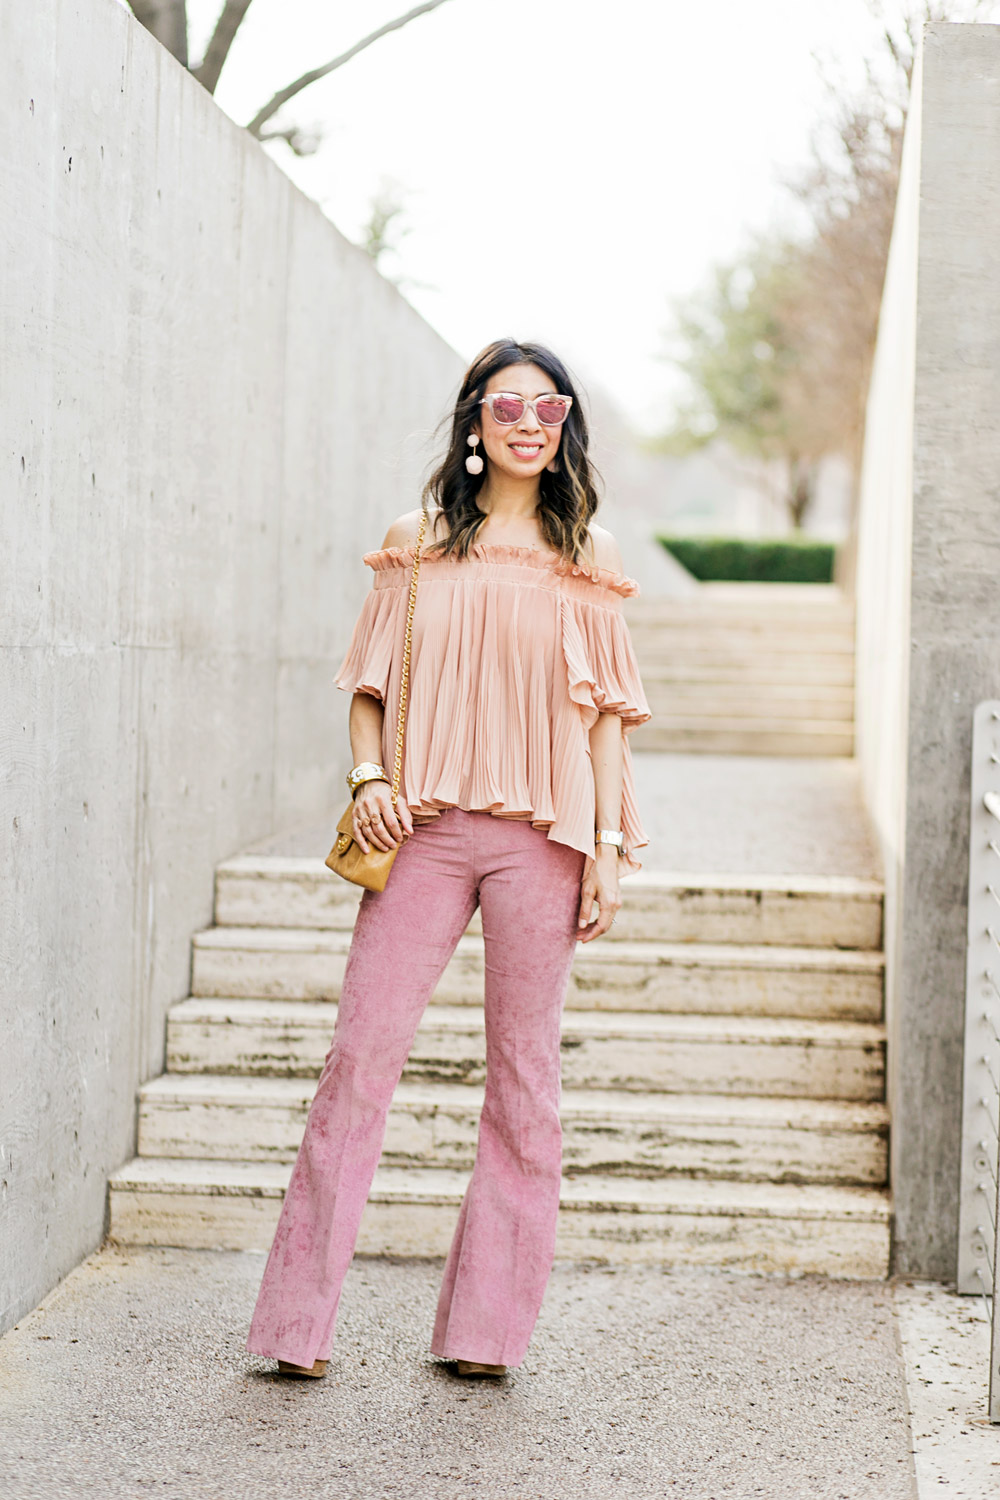 baublebar bahama pink pom pm earrings with endless rose pink pleated off the shoulder top and pink flare corduroy pants, chanel caviar mini flap, dior diorama pink mirrored sunglasses, spring outfit idea